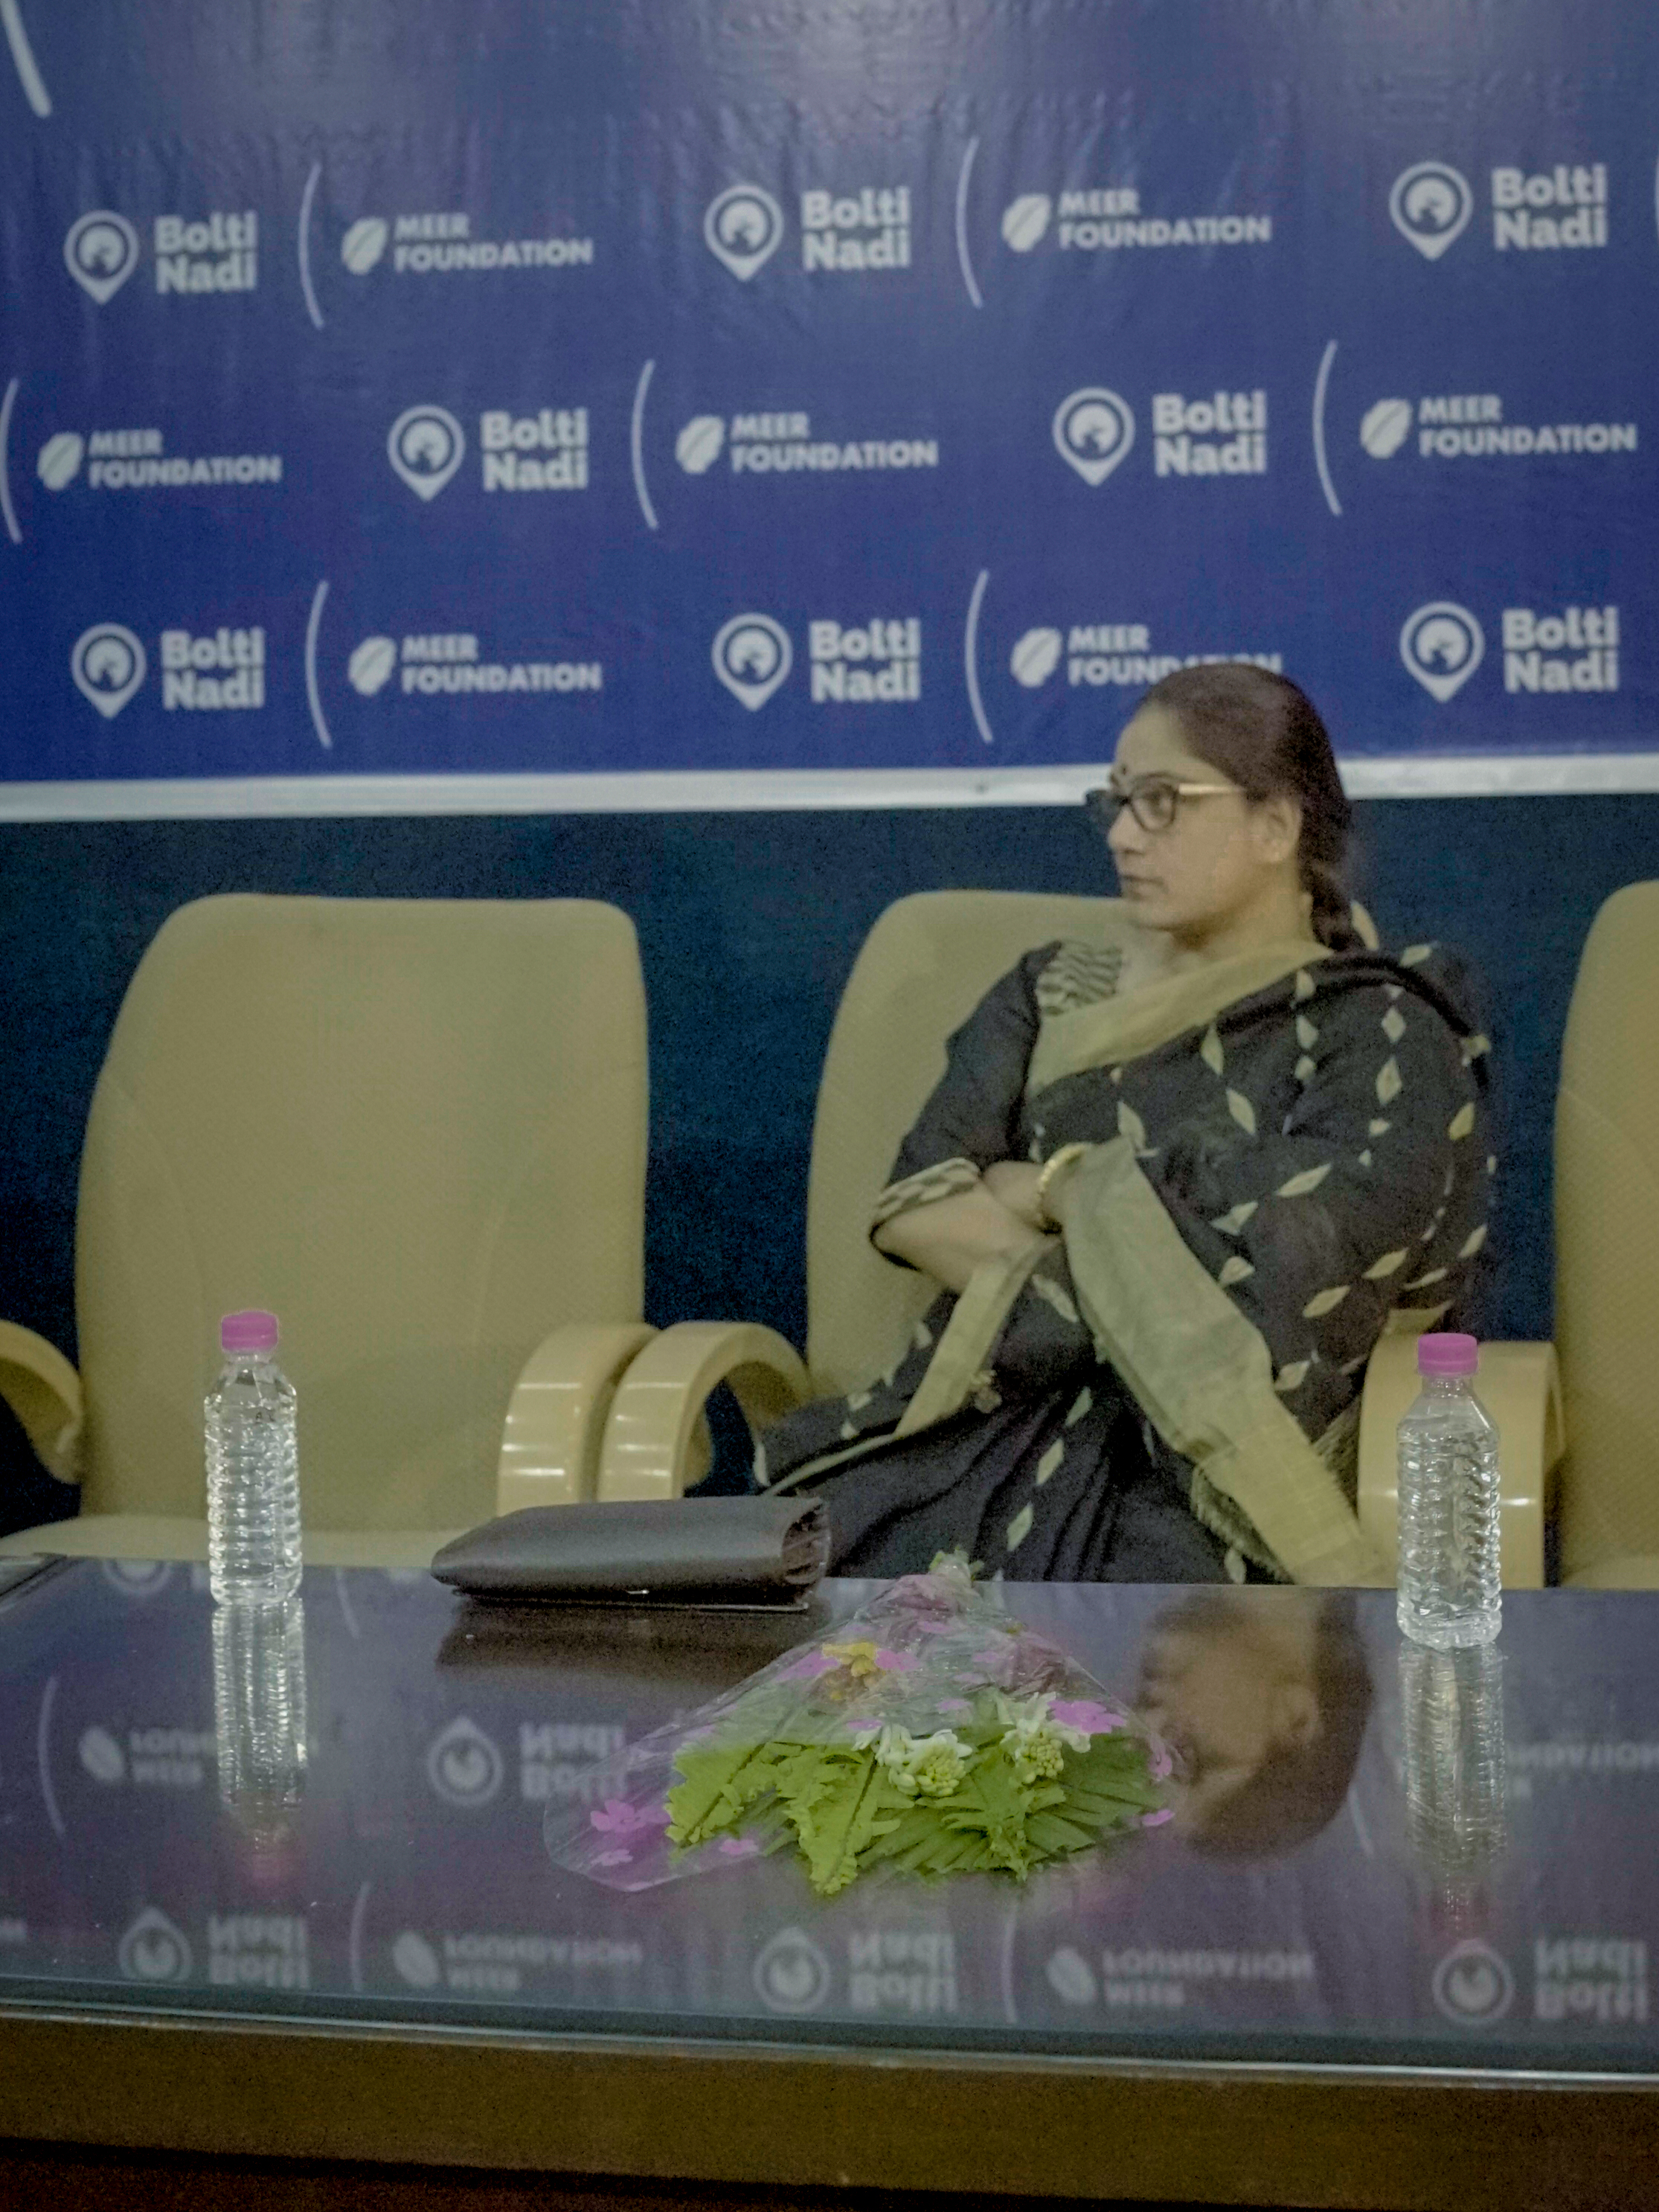 Meer Foundation's Bolti Nadi Conclave 2019